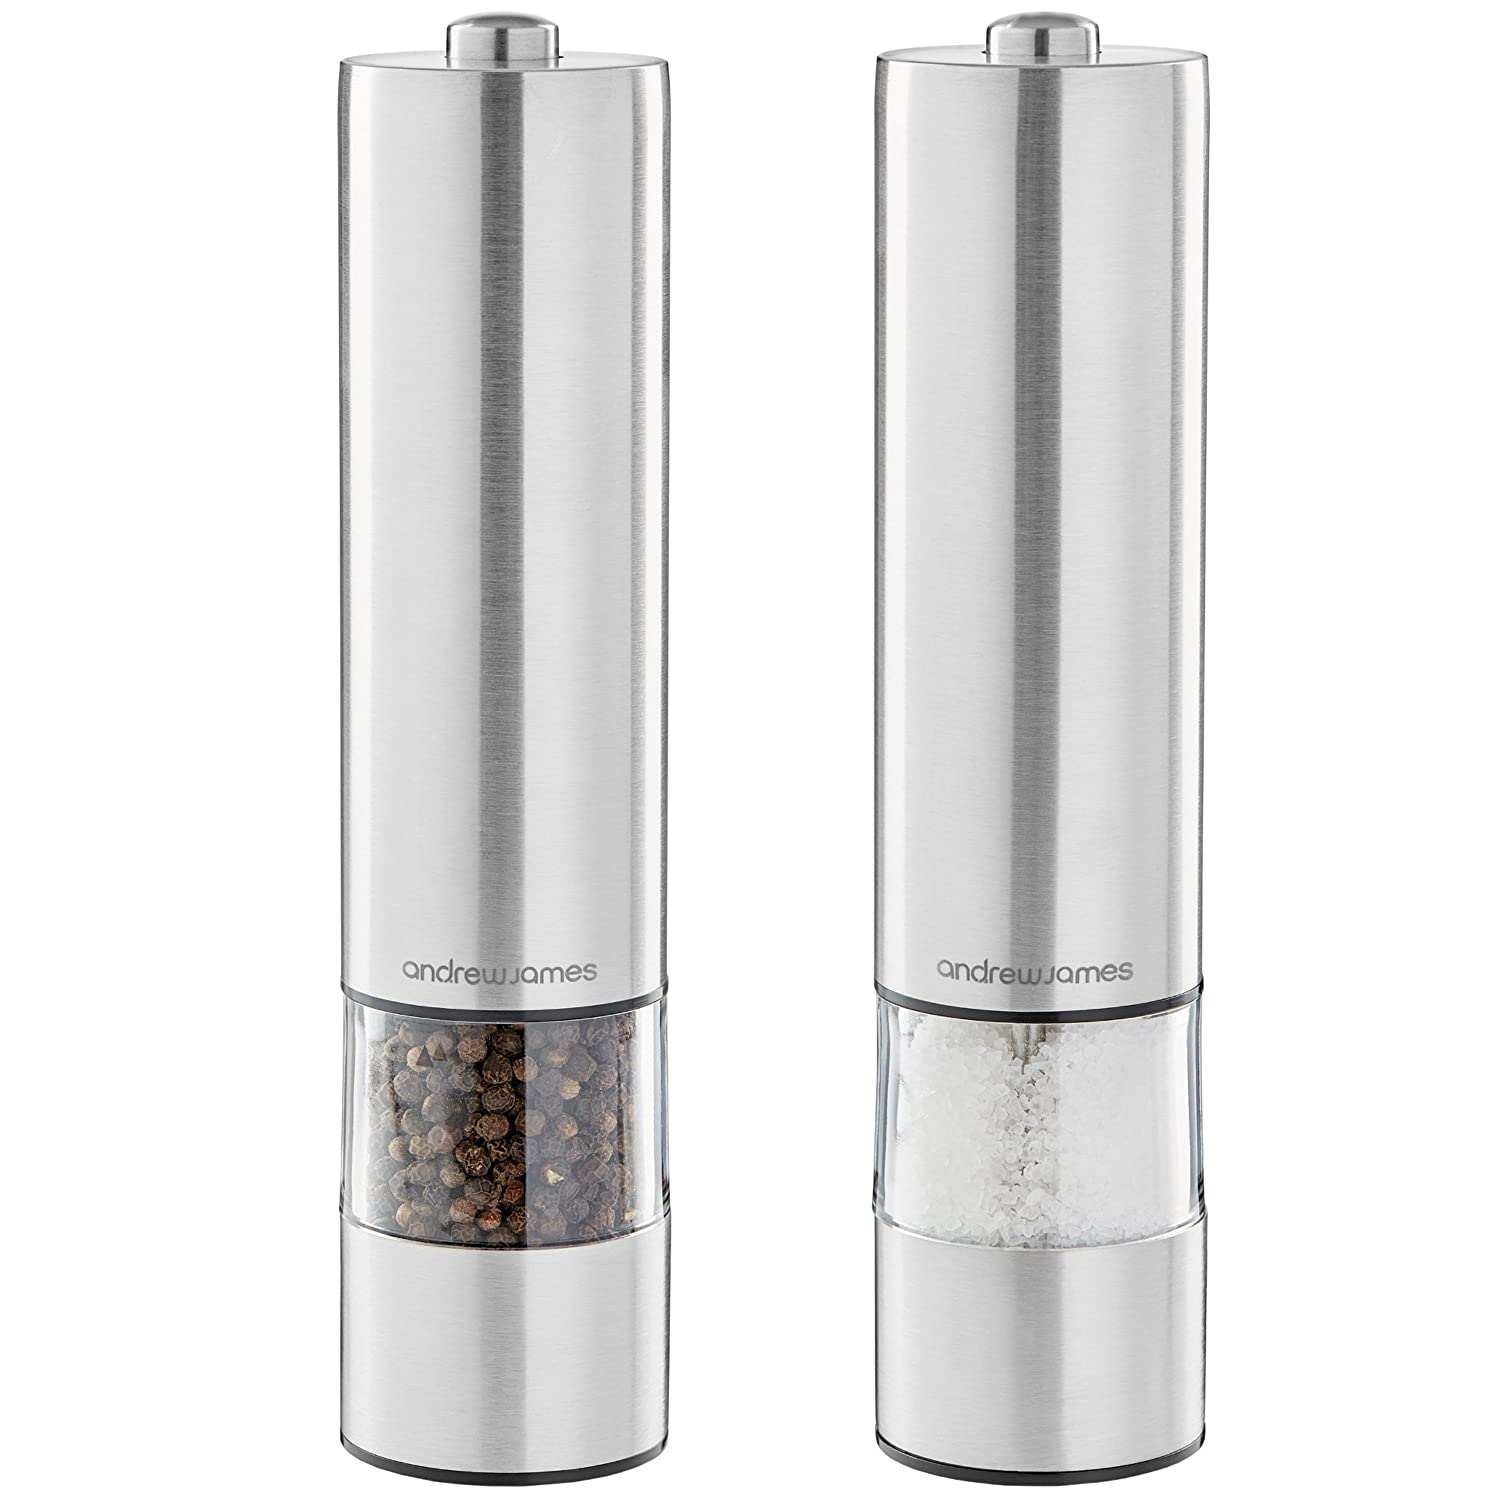 Andrew James Electric Salt And Pepper Mill Set Battery Operated